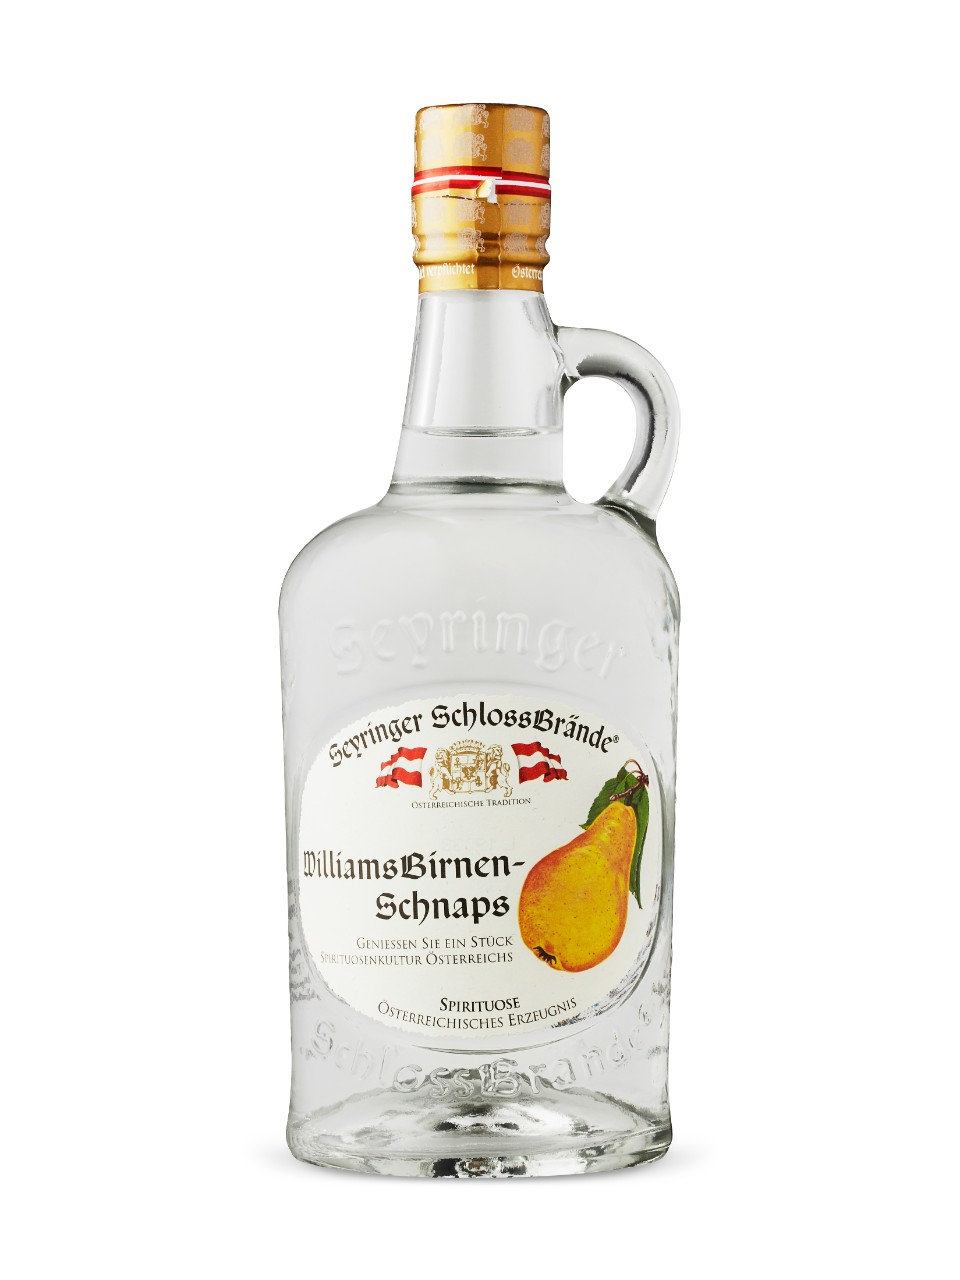 Image for Williamsbirnen Schnaps from LCBO